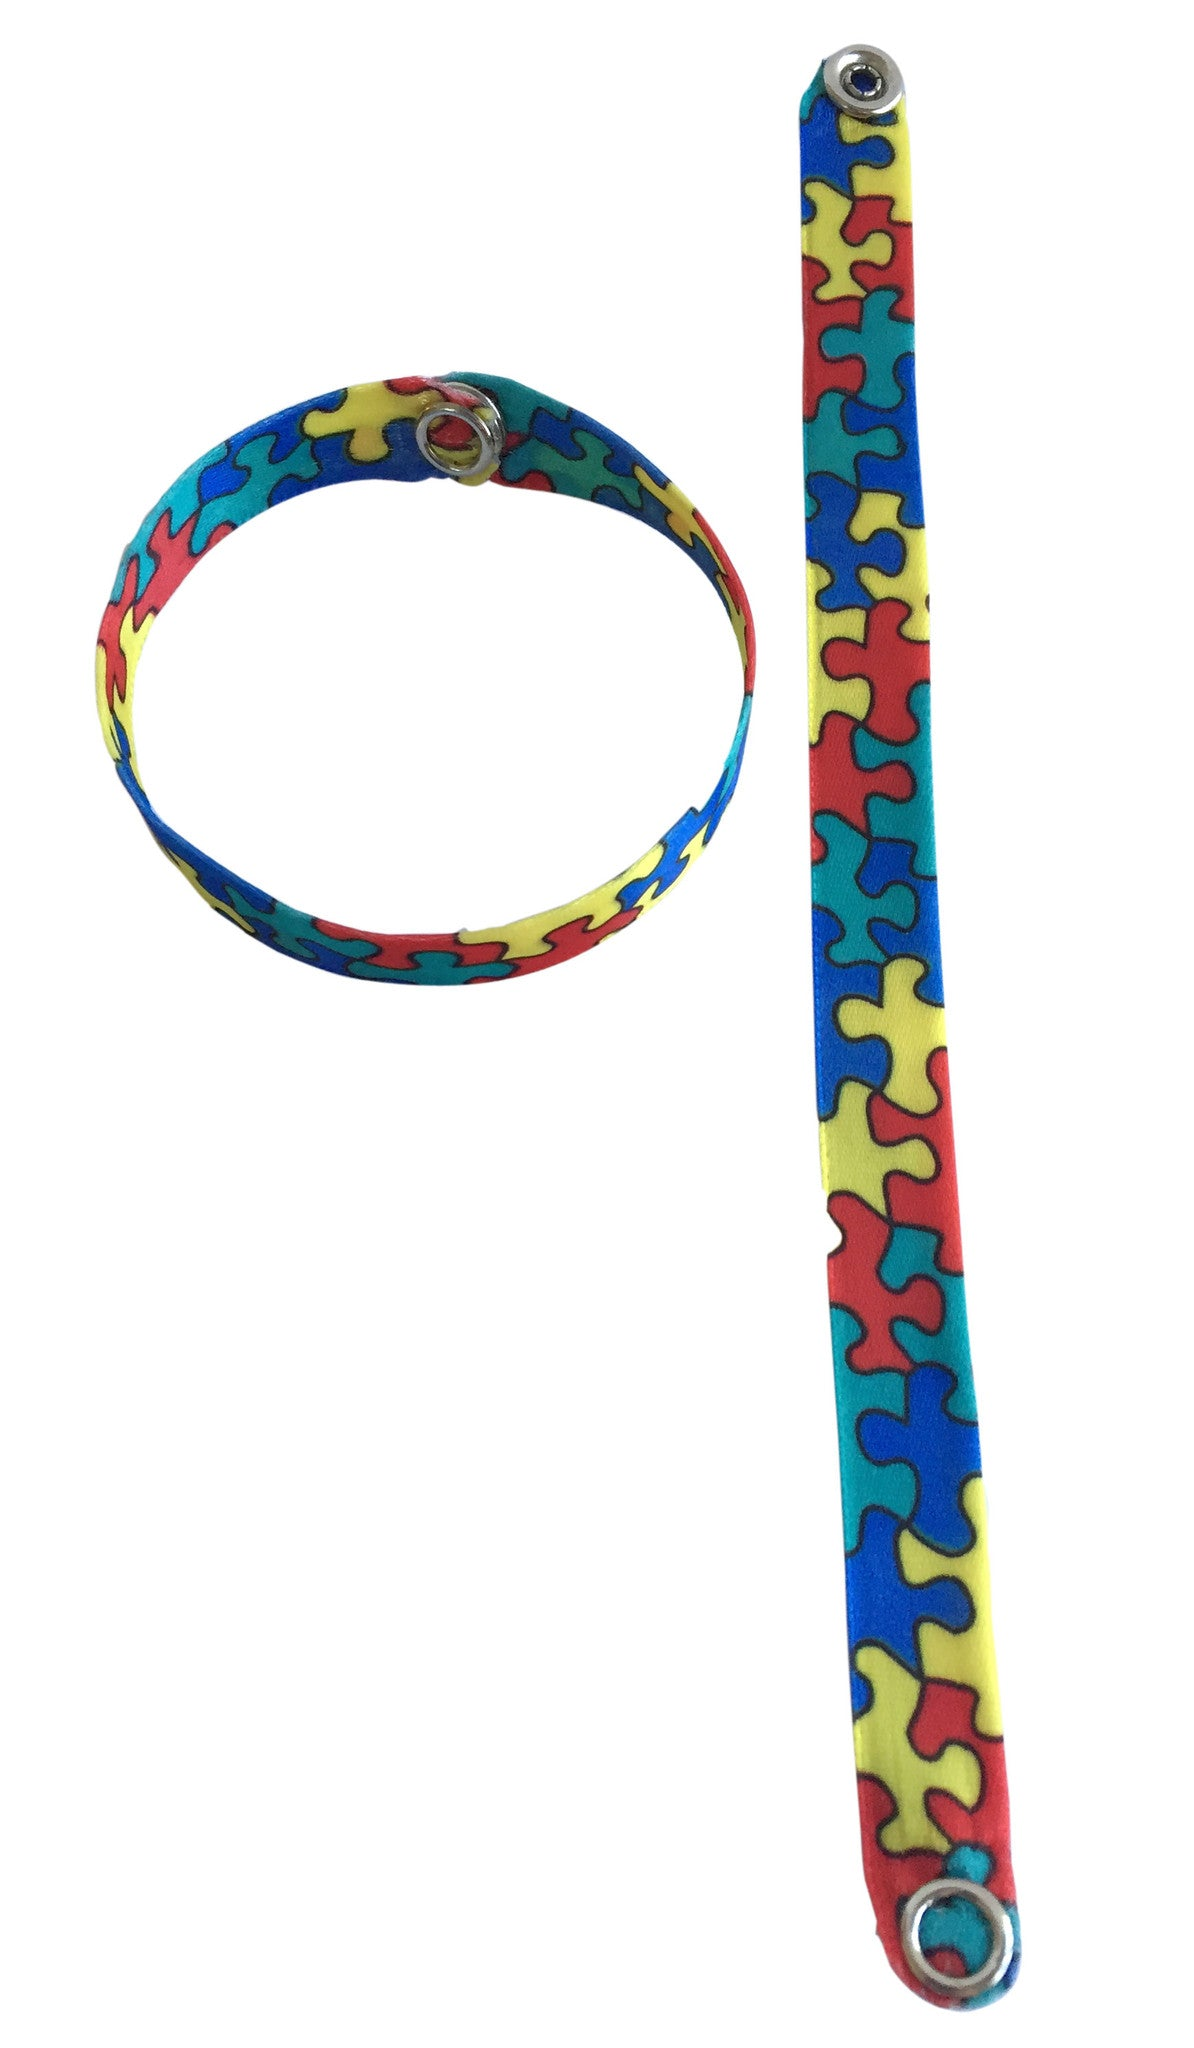 autism dsc bracelet yellow bricks product lego uk